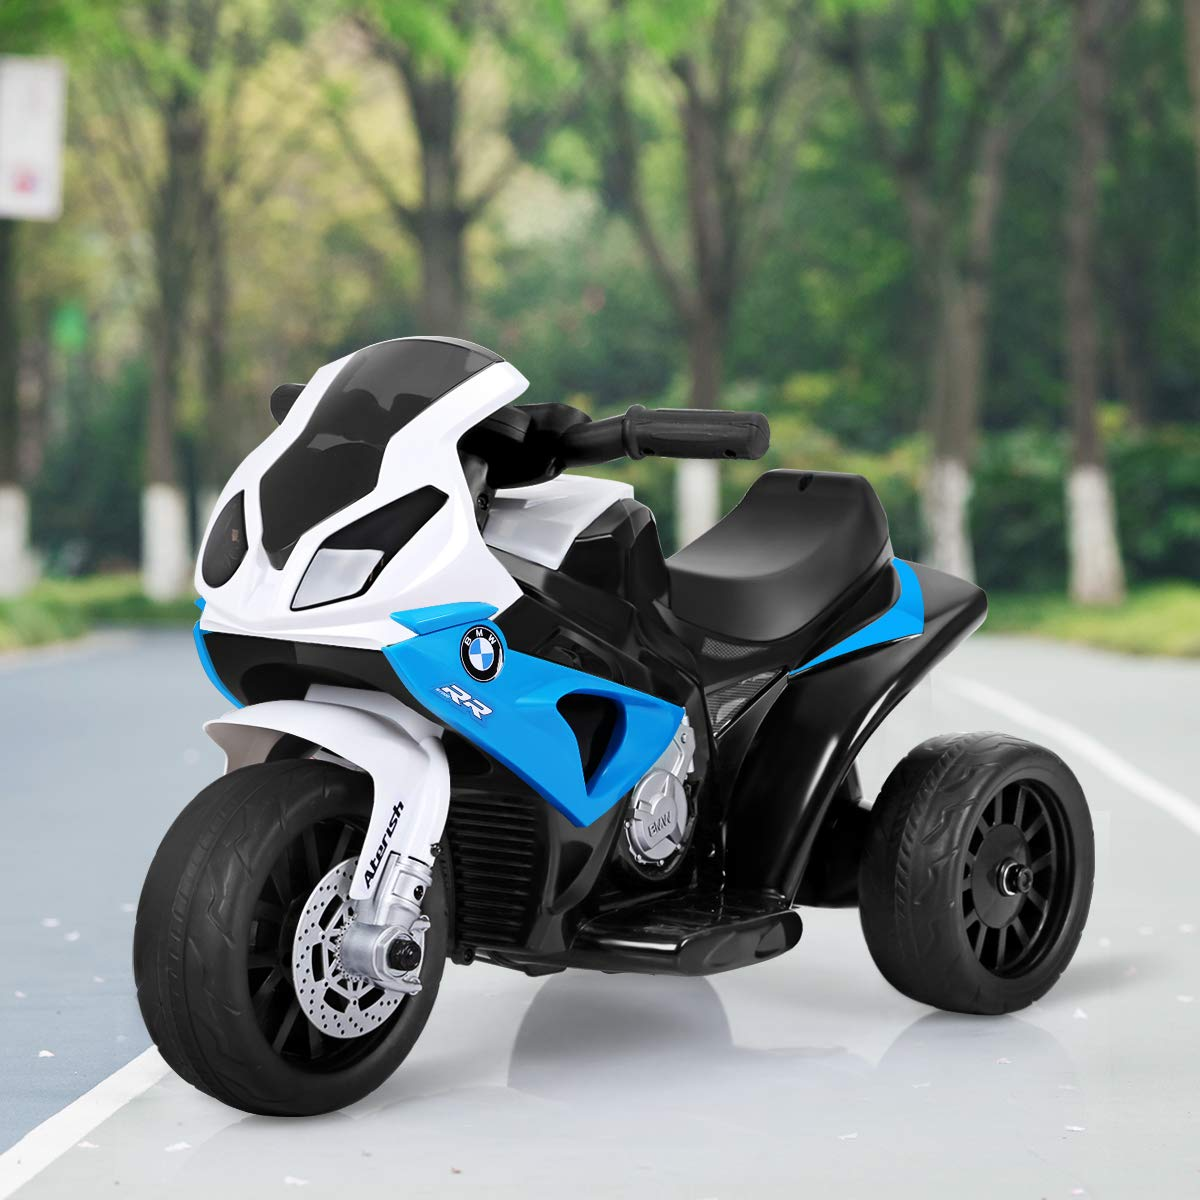 6V Battery Powered 3 Wheels Motorcycle Toy for Children Boys /& Girls Costzon Kids Ride on Motorcycle Blue Pedal Electric Ride on Motorcycle w//Headlights /&Music